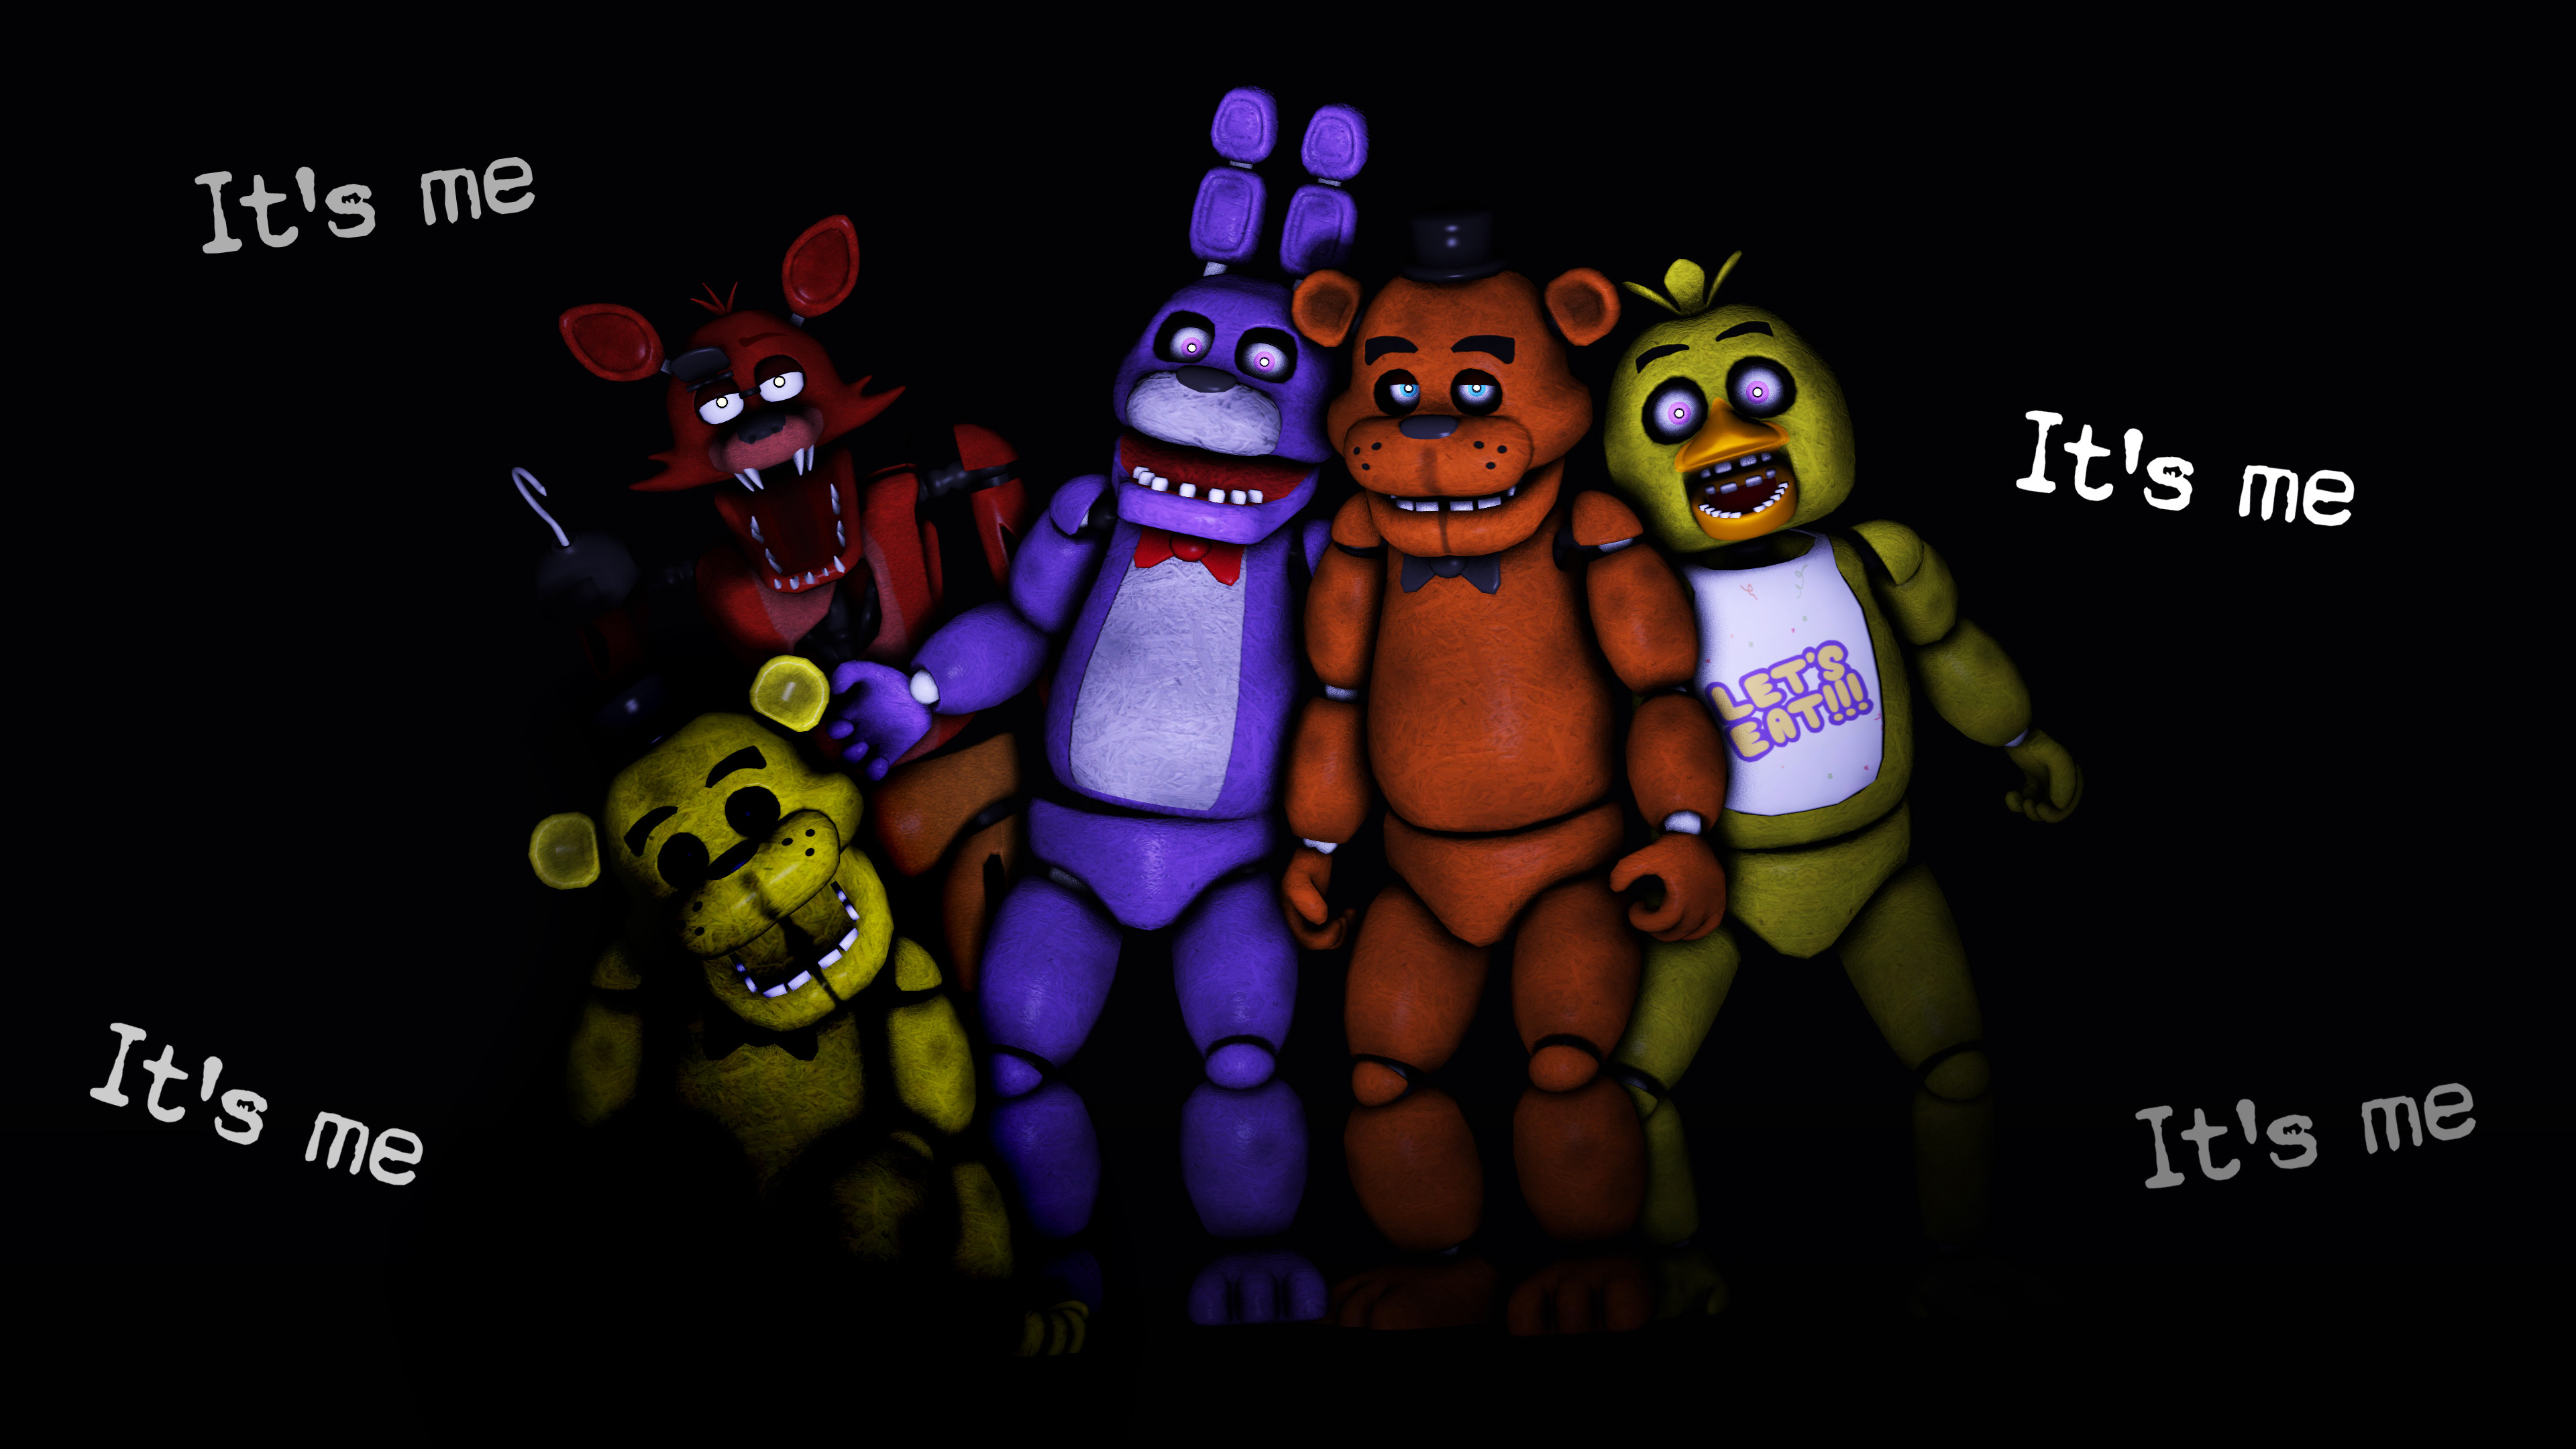 3840x2160 SFM] FNAF Animatronics by LoneWolfHBS on DeviantArt